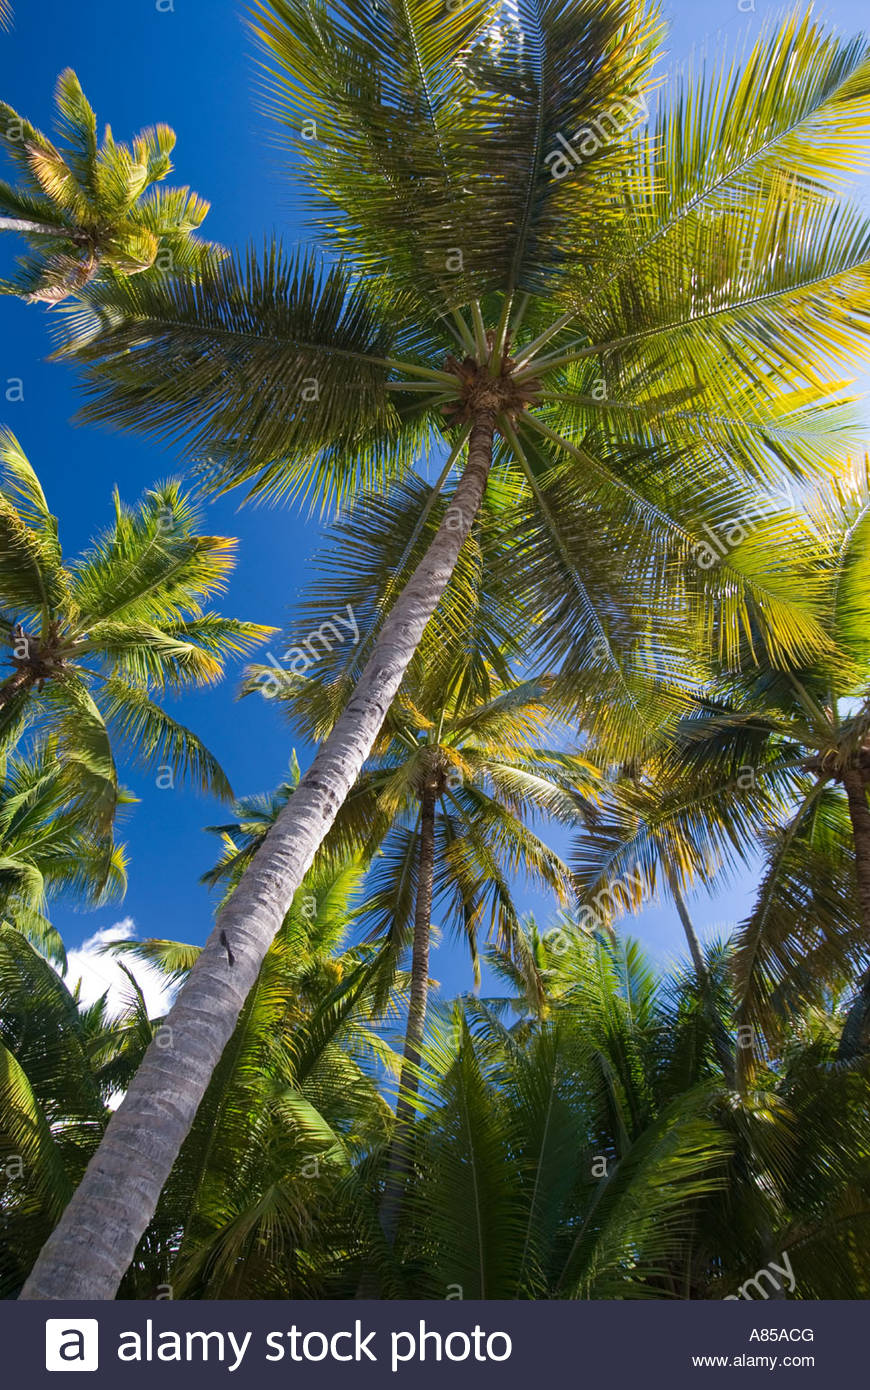 Looking up at palm trees, St Lucia, Windward Islands, Caribbean - Stock Image